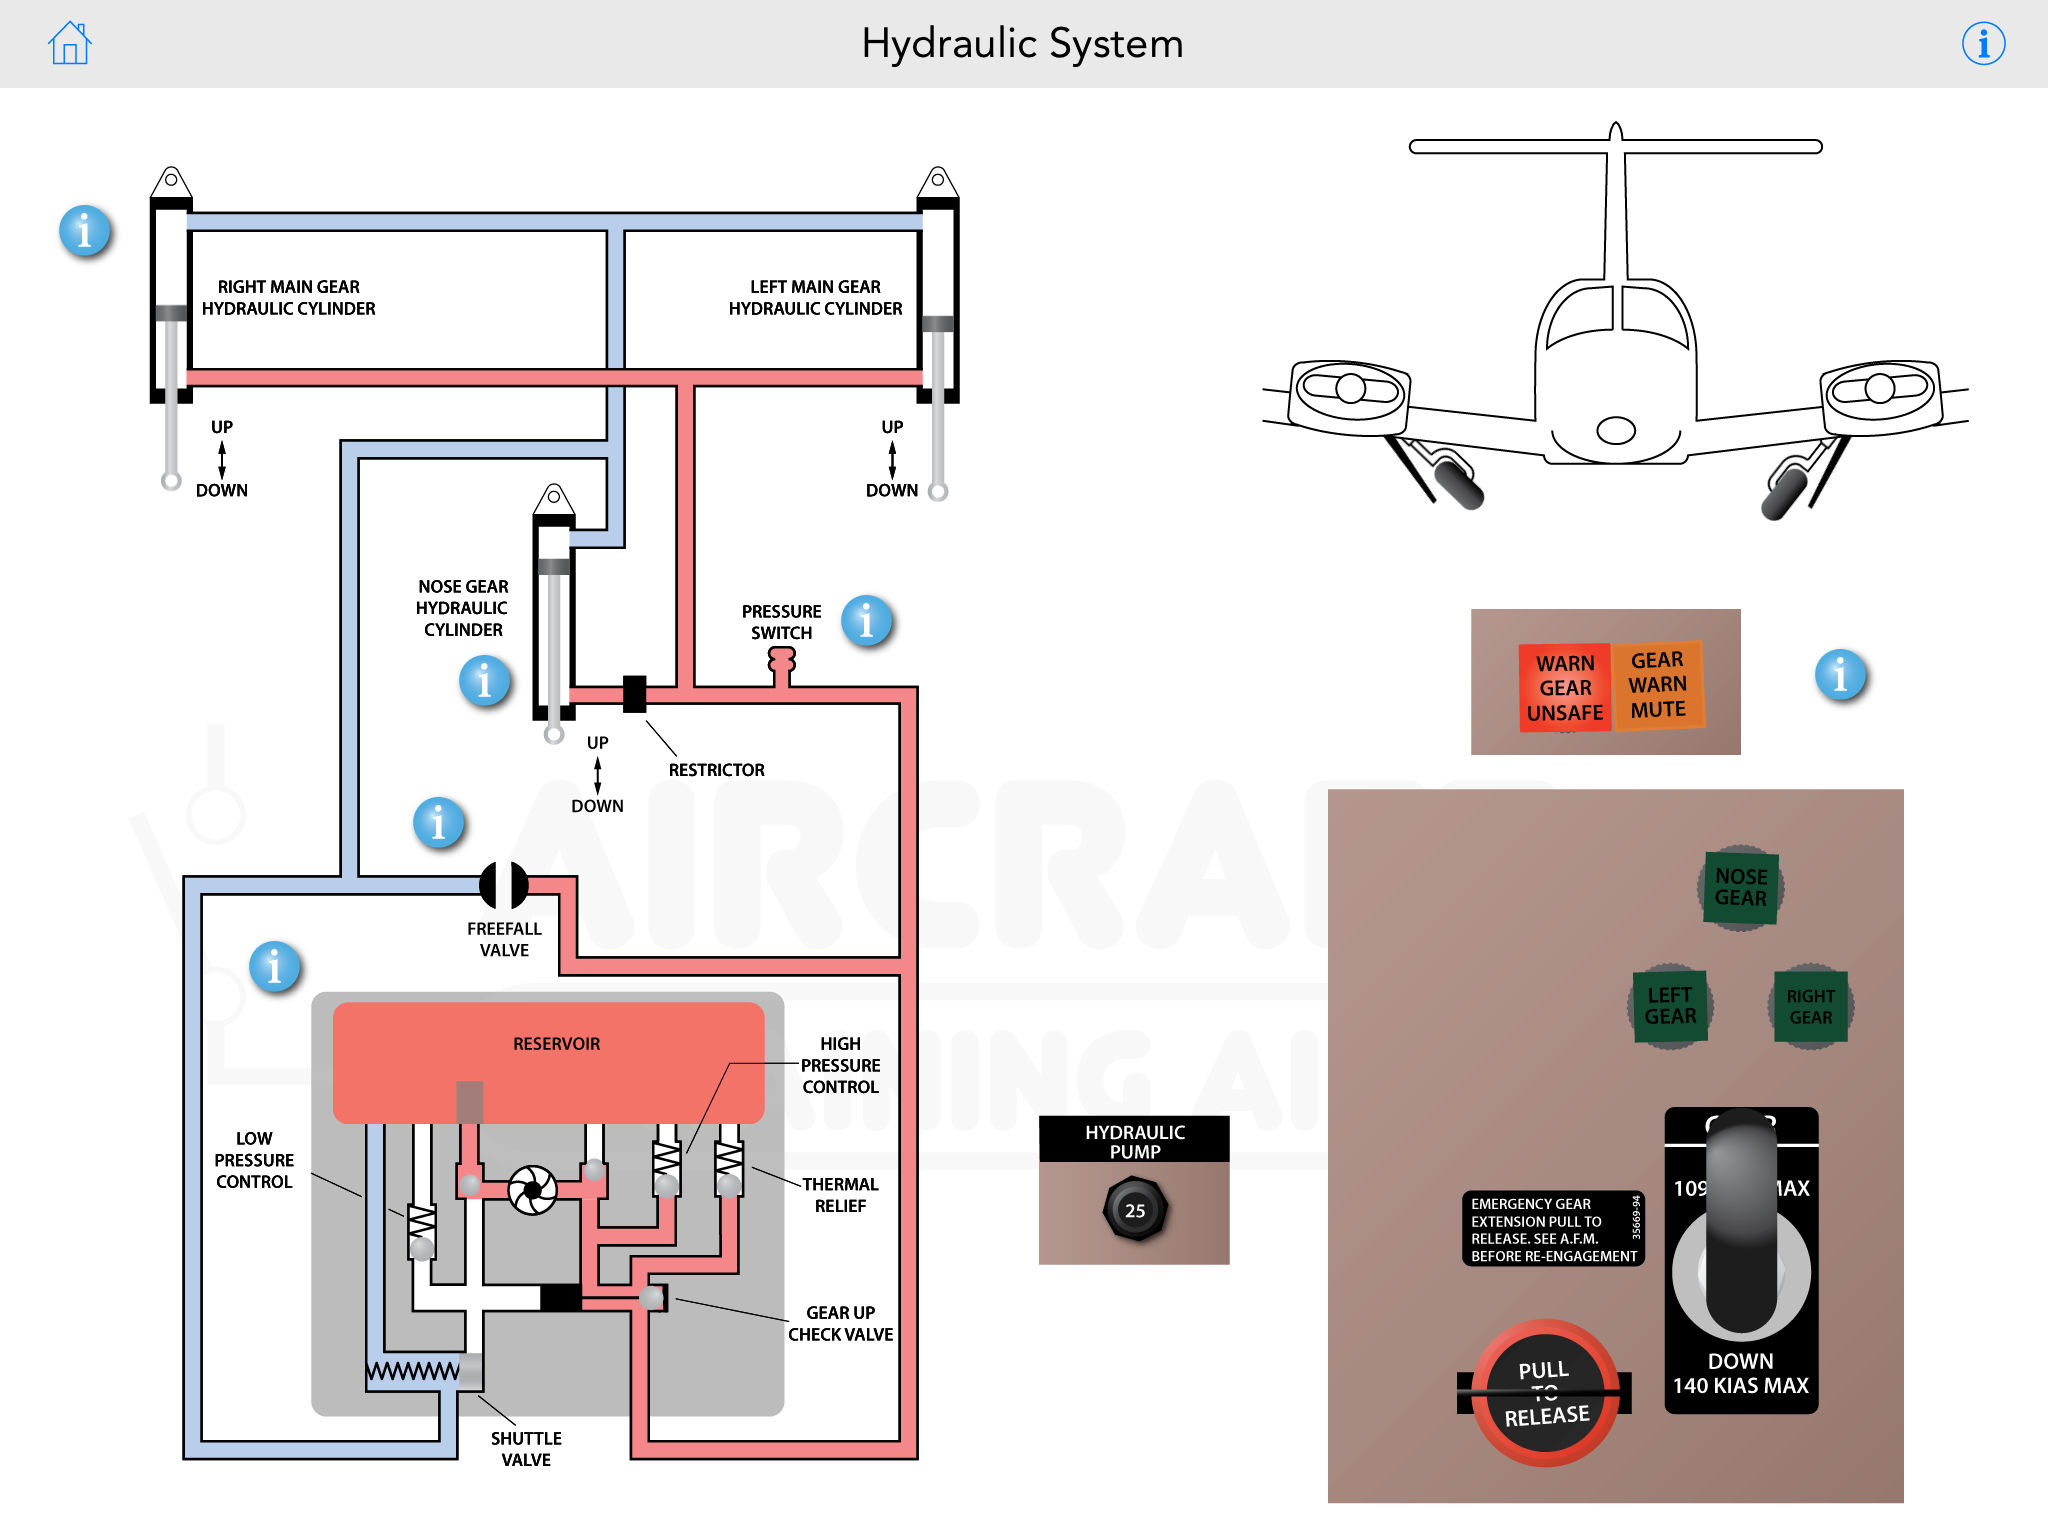 Pa System Schematic Diagram